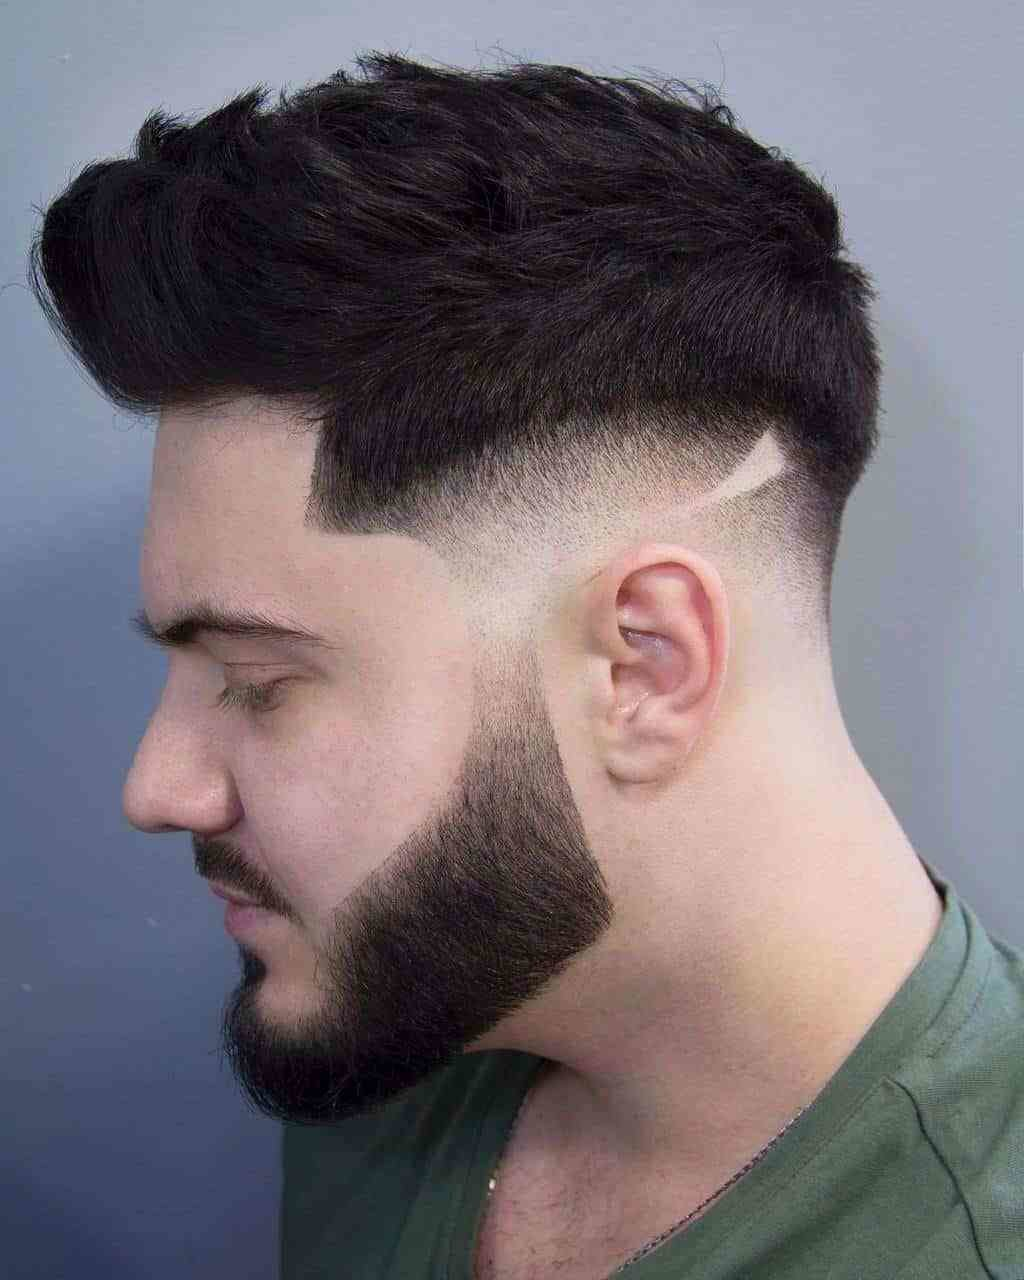 The Best 160 Coolest Beard Styles To Grab Instant Attention 2019 Pictures